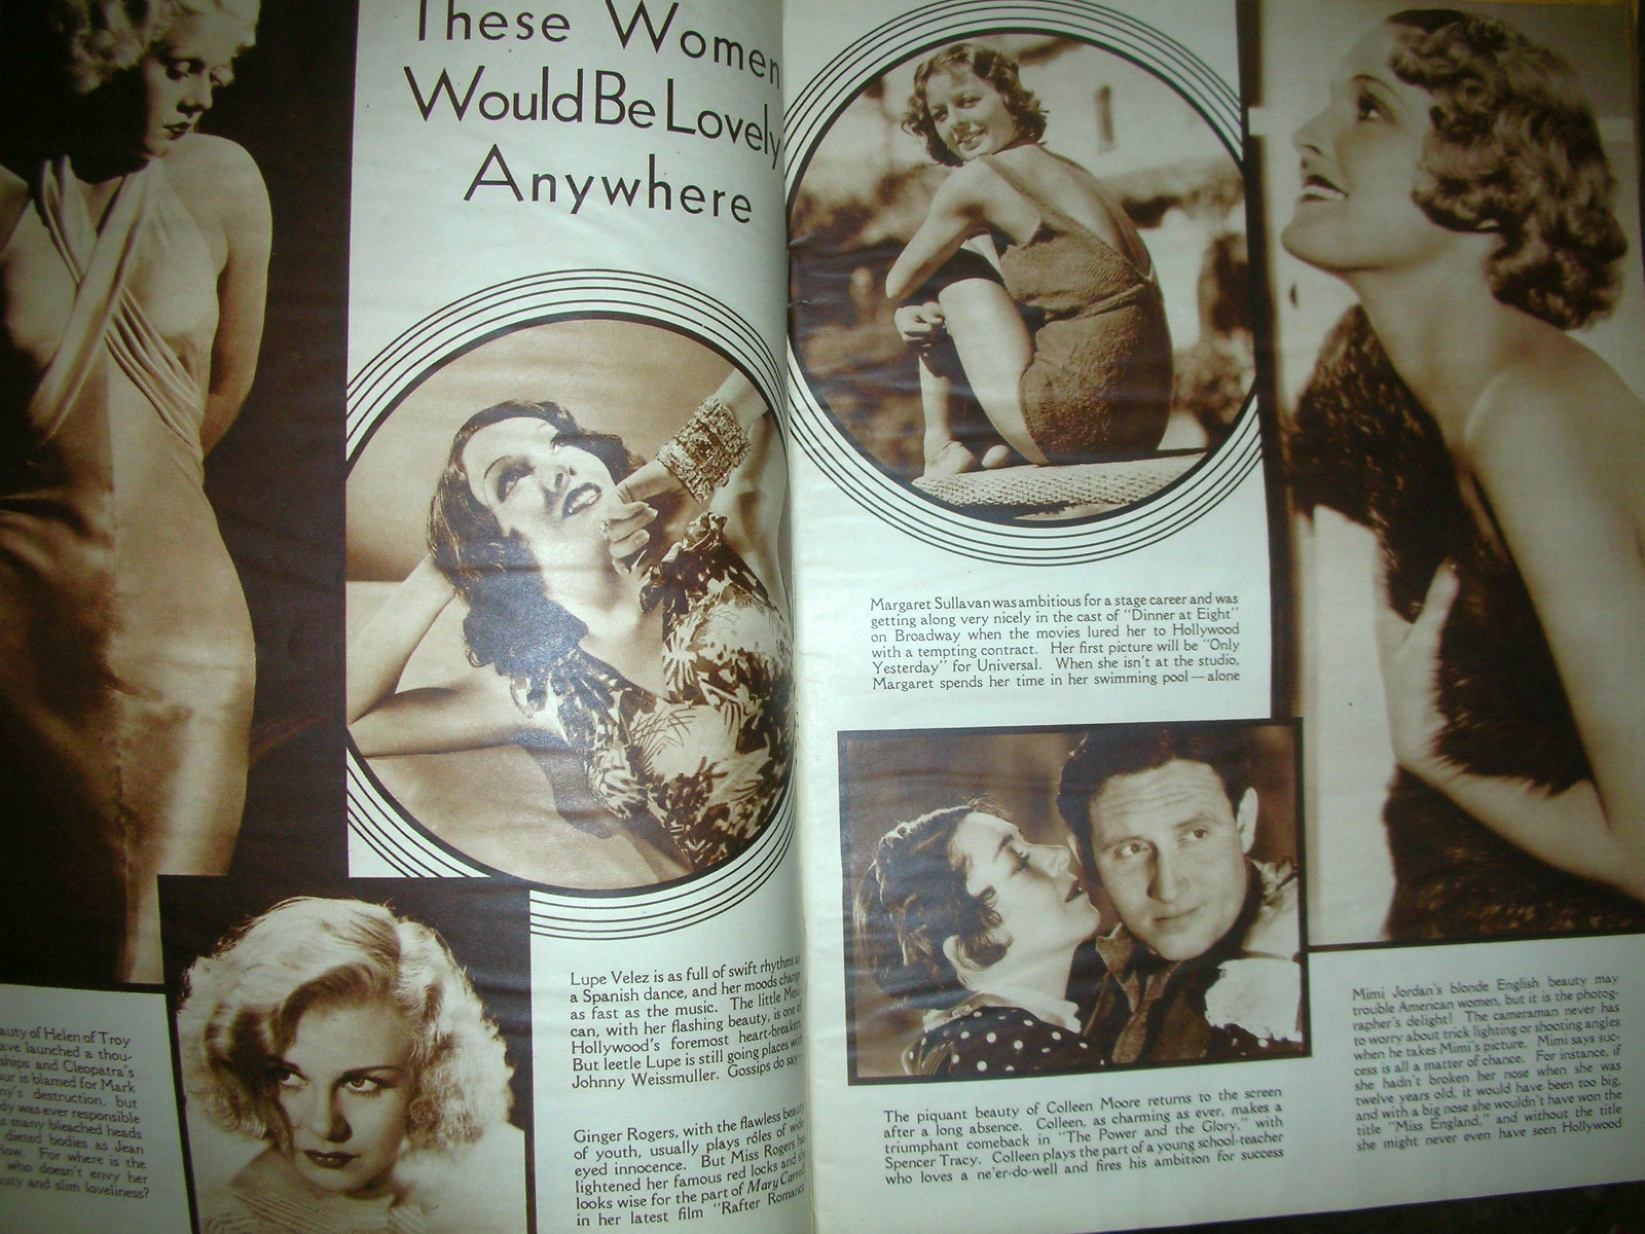 carole lombard shadoplay sept 1933 women lovely anywhere large